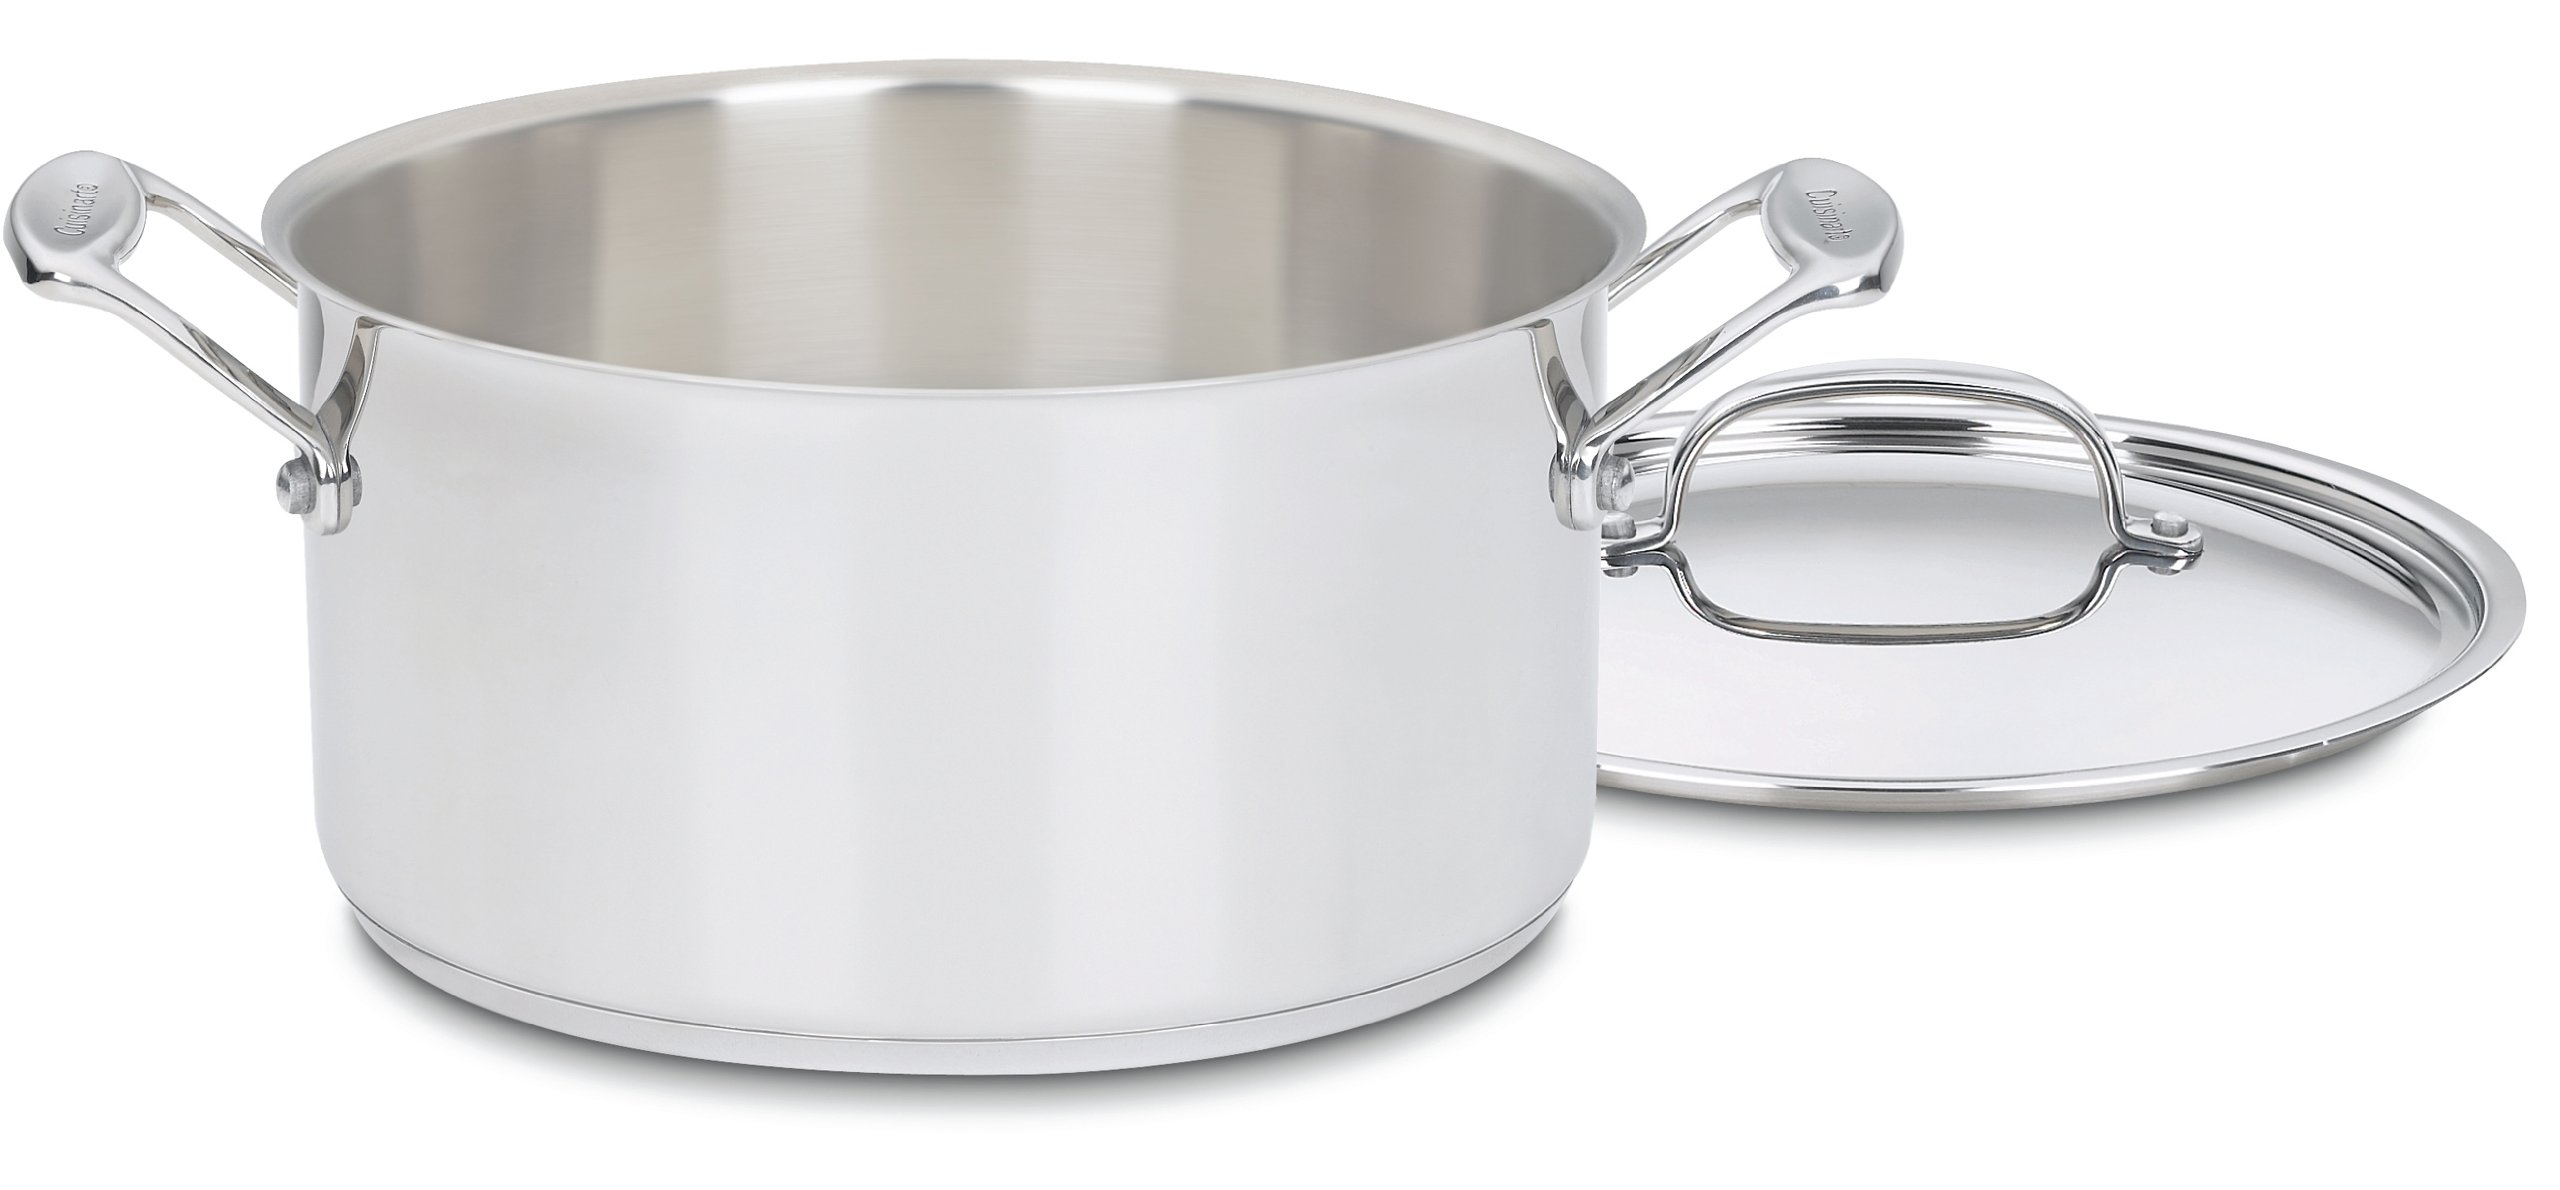 Cuisinart 744-24 Chef's Classic Stainless Stockpot with Cover, 6-Quart by Cuisinart